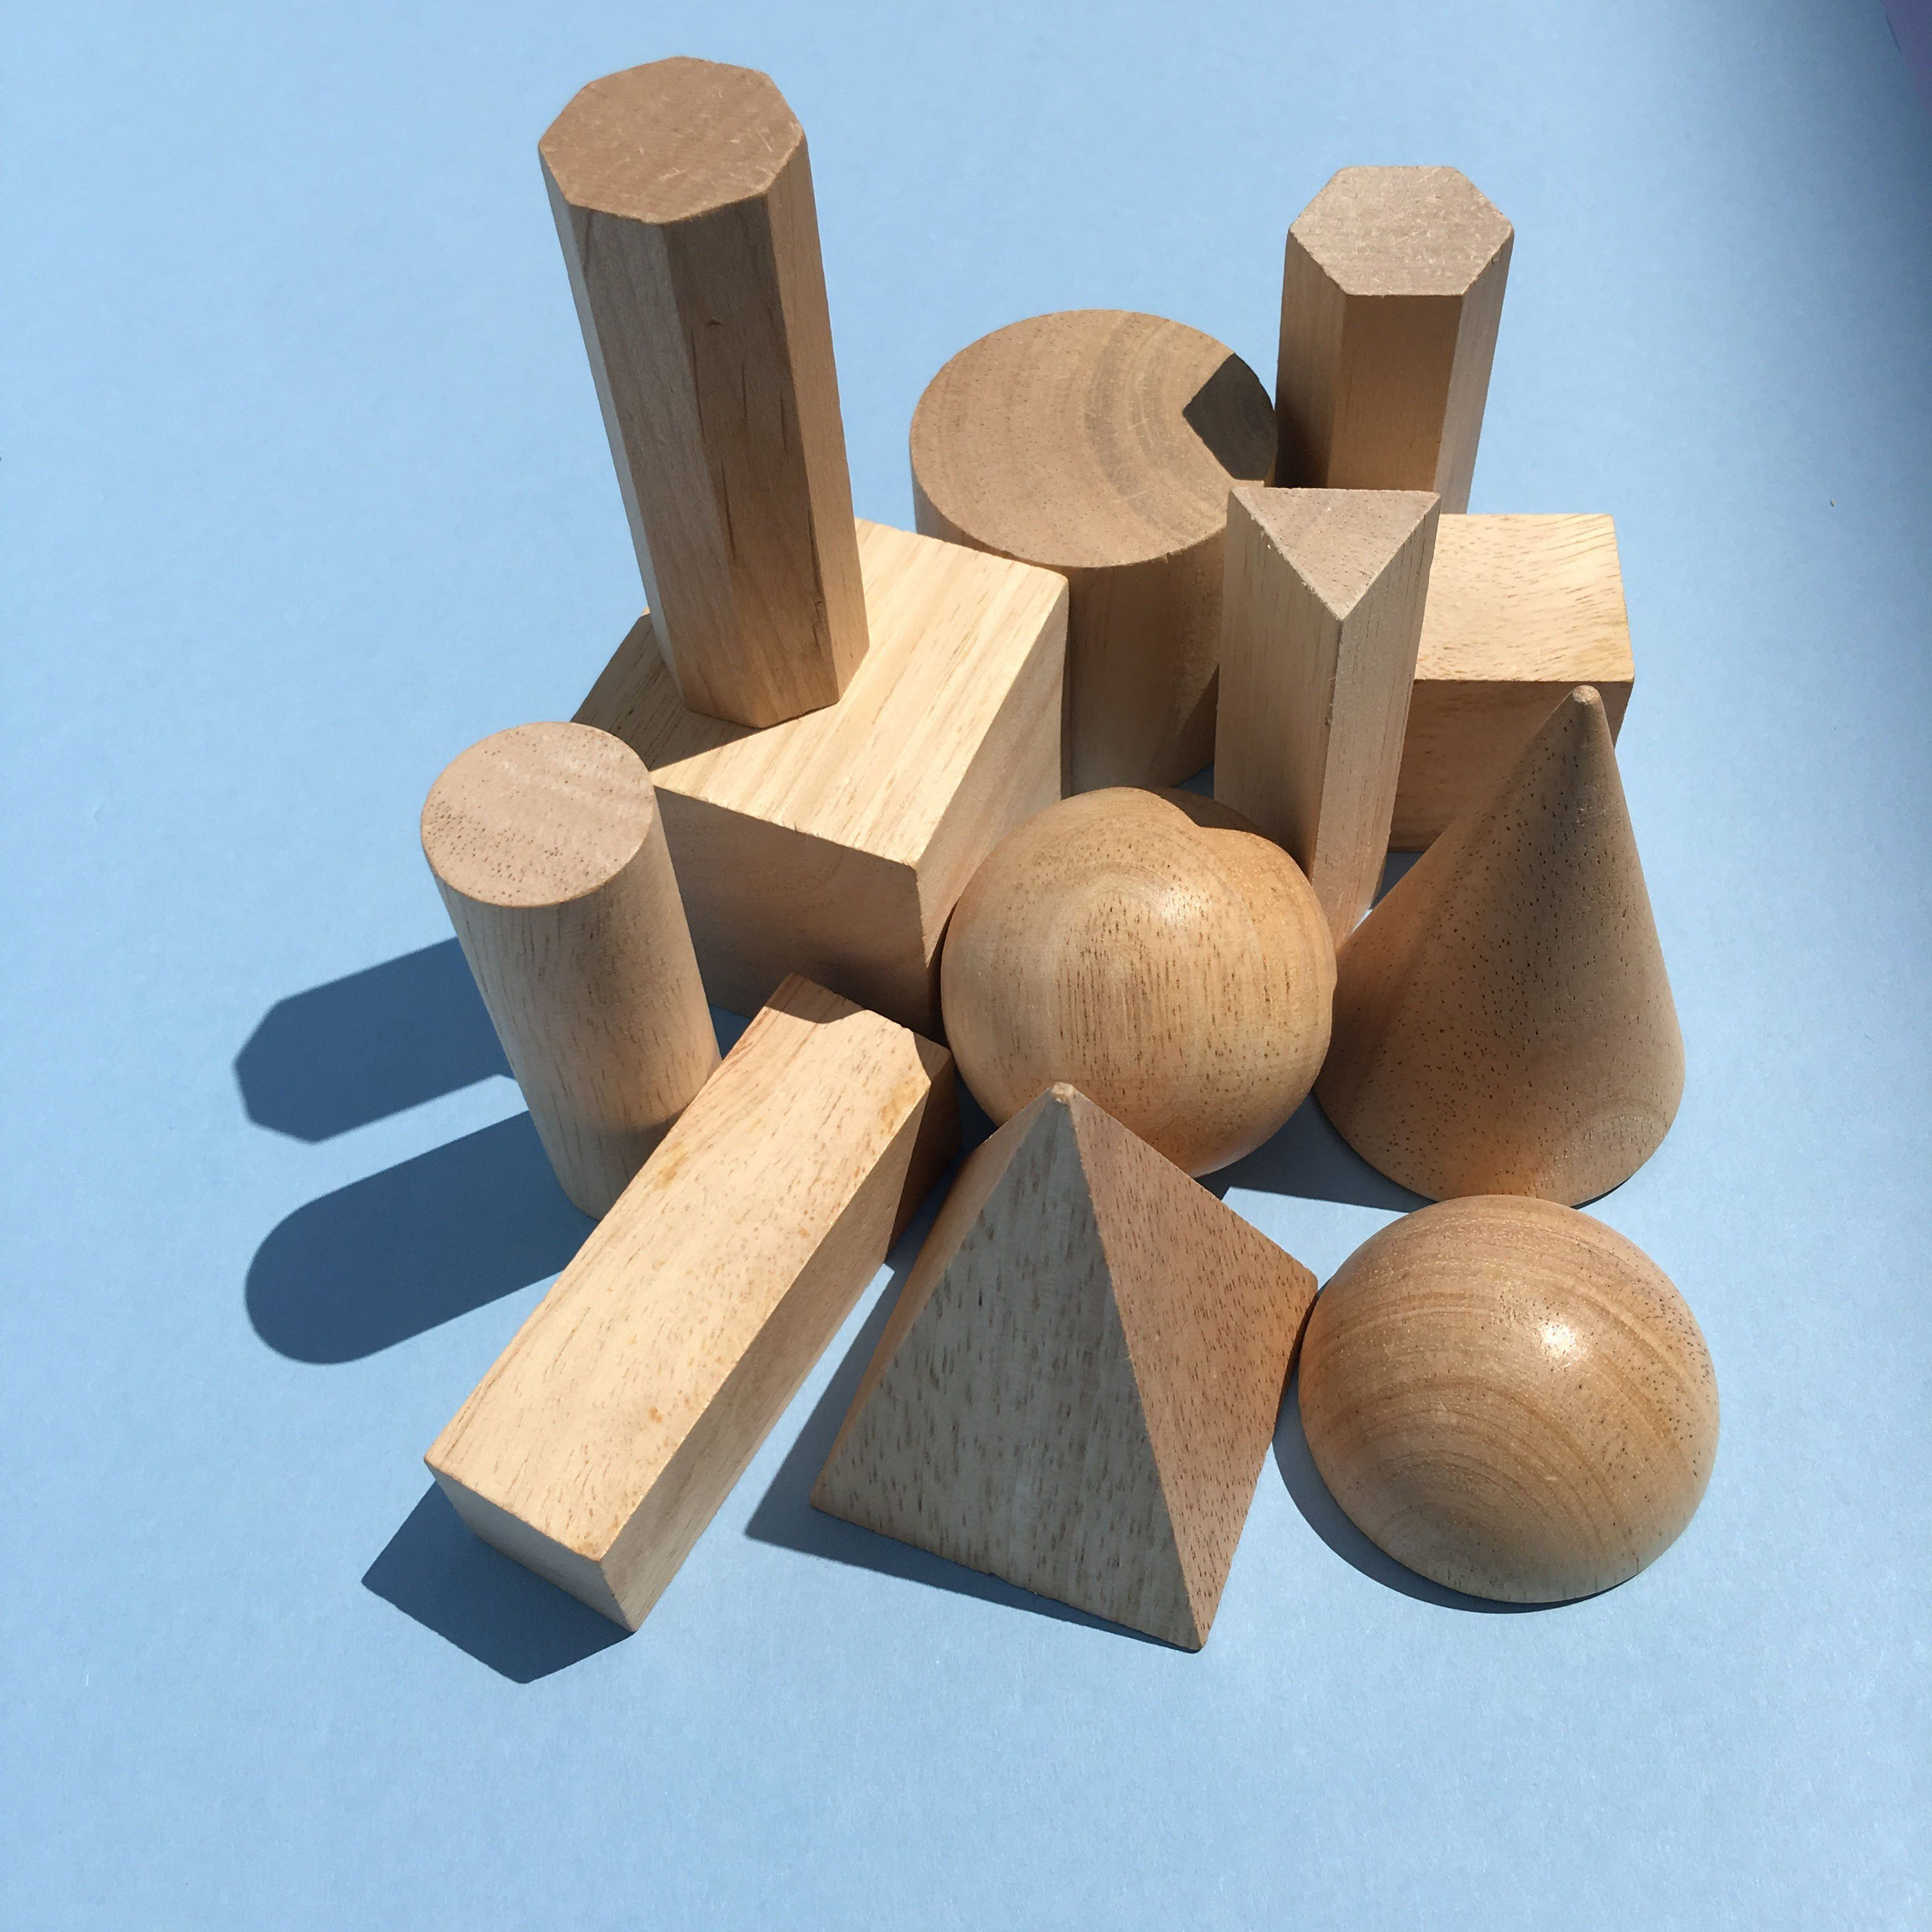 Wood Geometric Solids 12 Piece Set